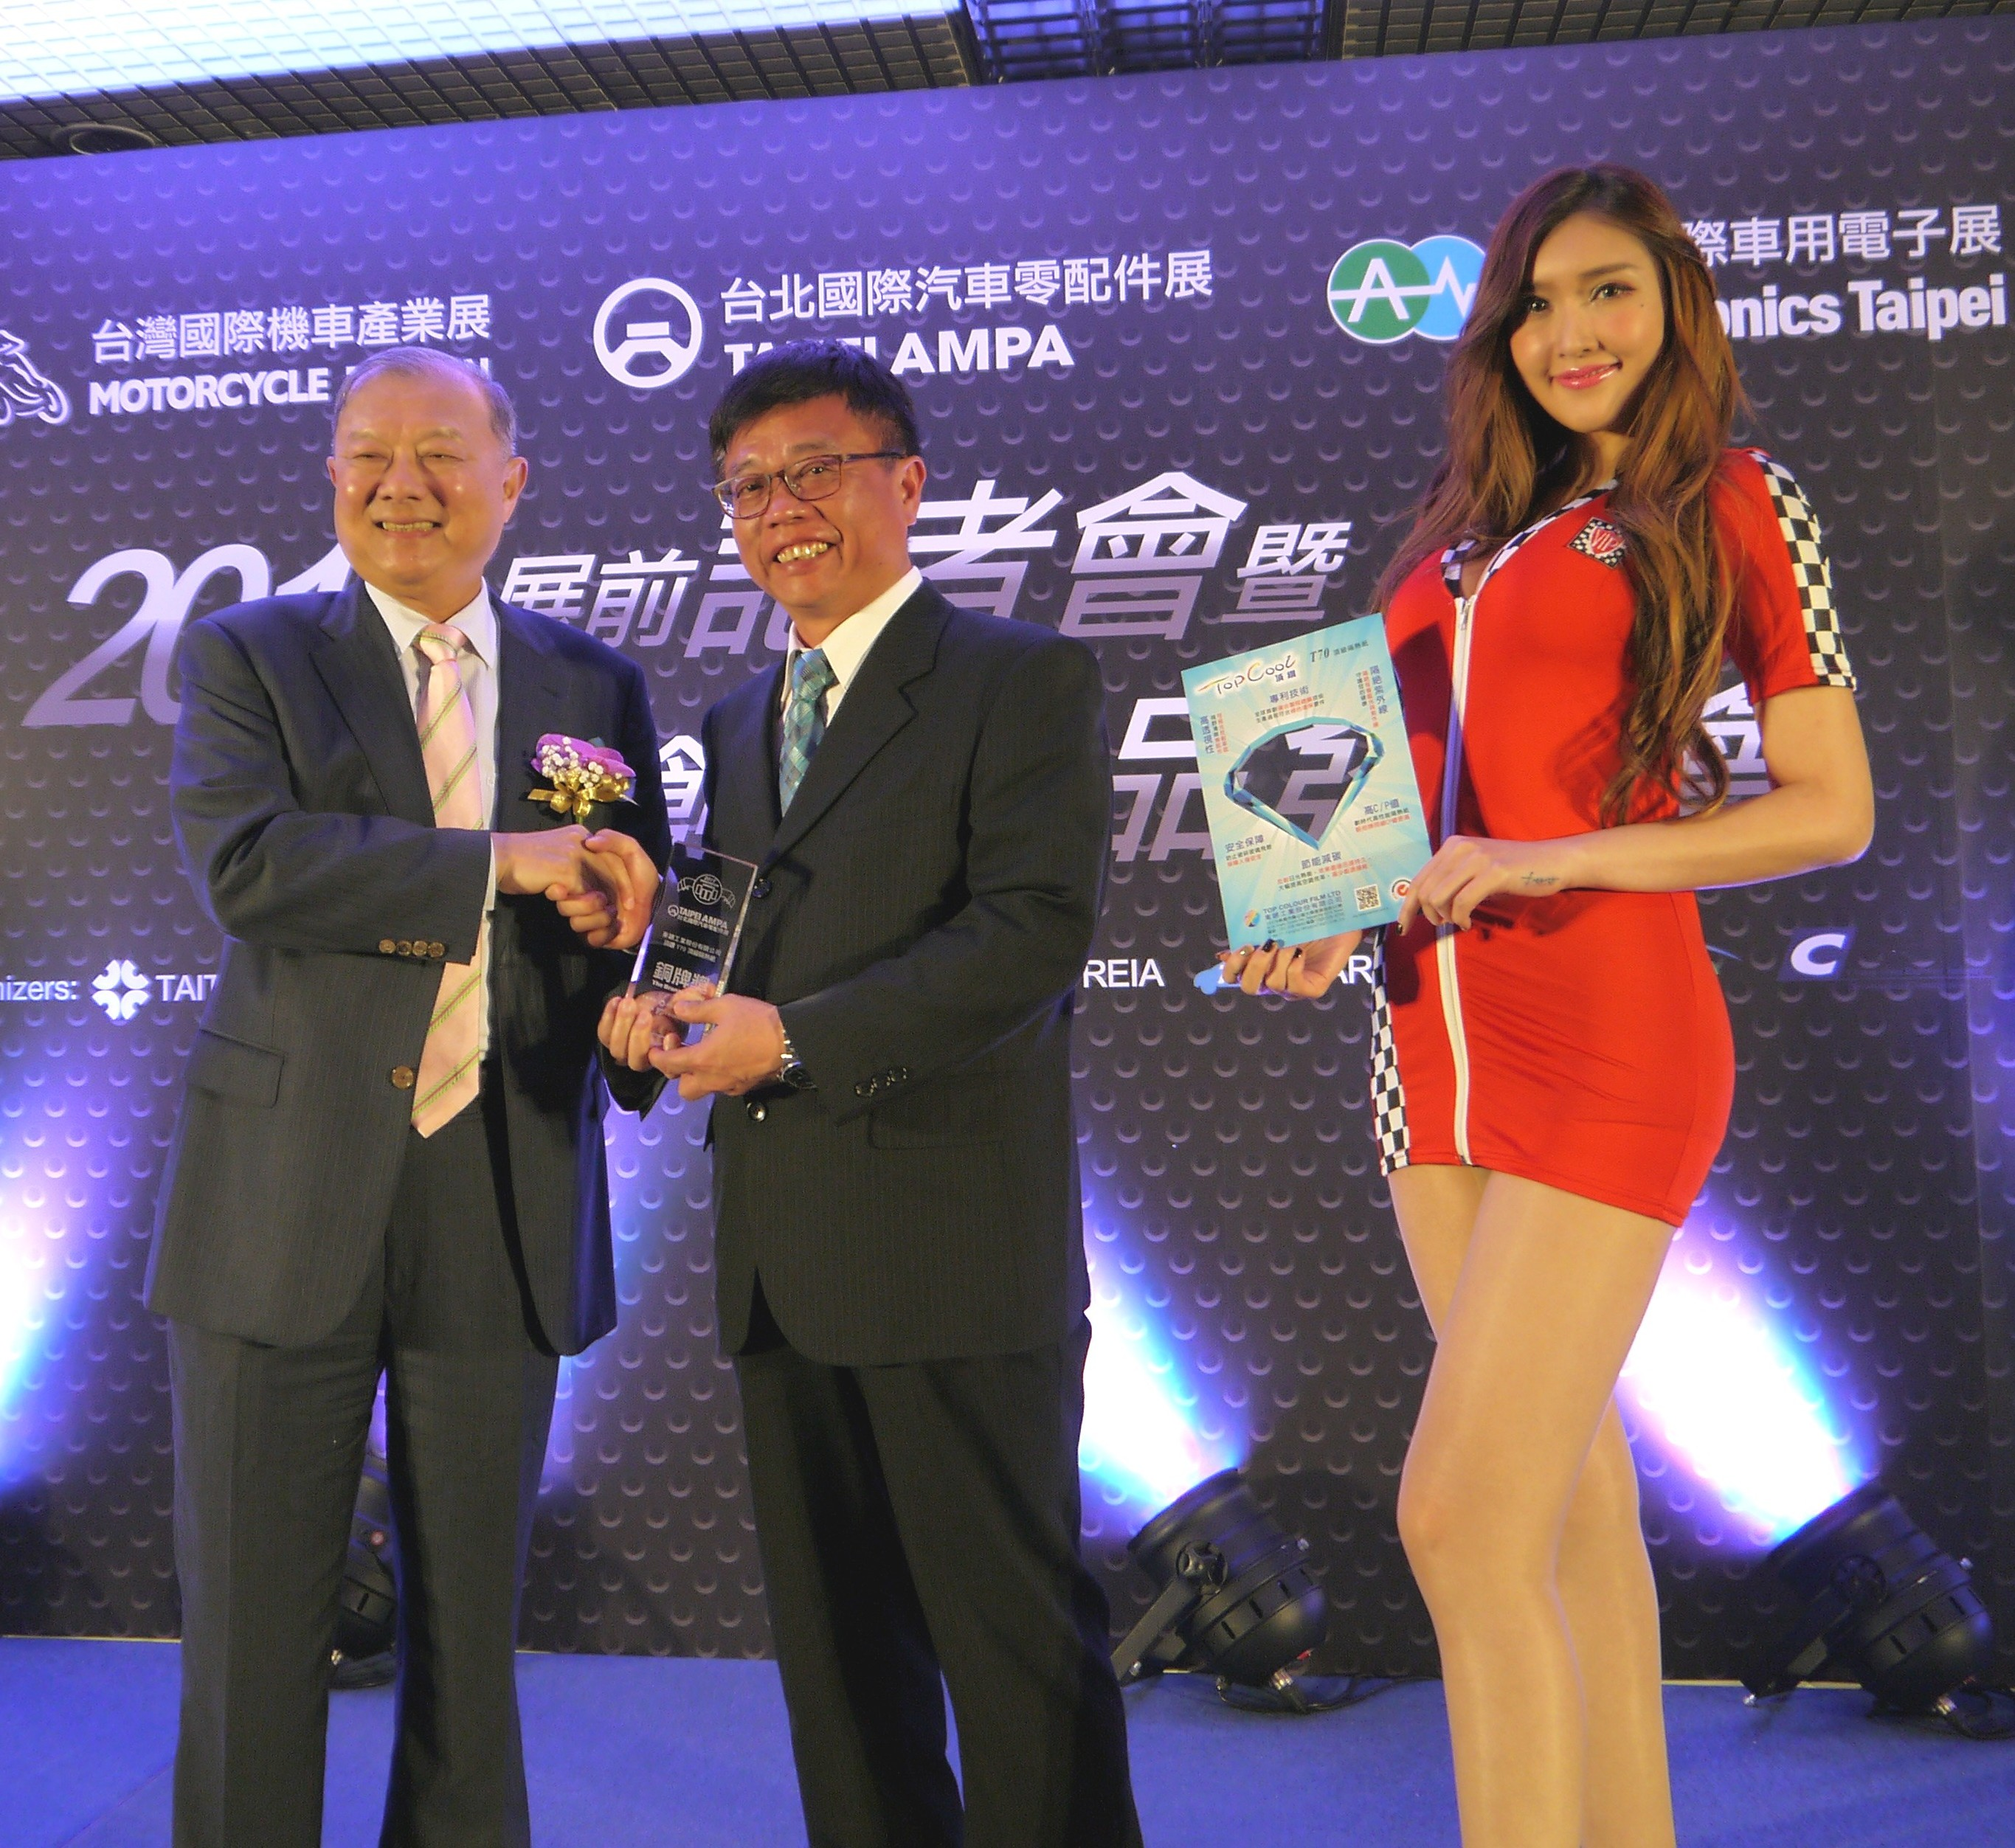 TopCool T70 excellent window film is the 2018 Taipei AMPA innovation awards winner!